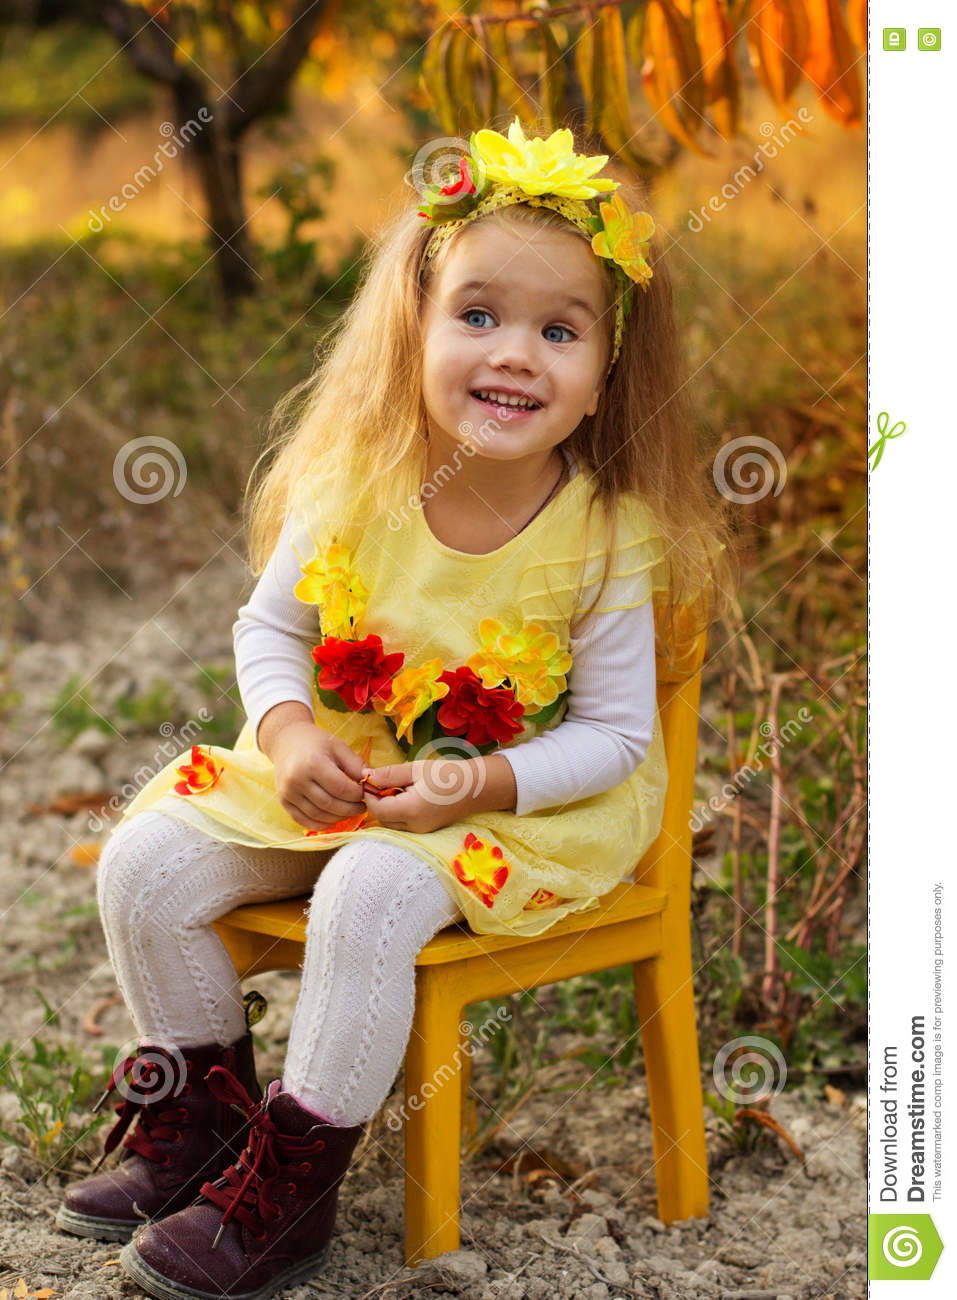 Little Girl Is Sitting On Chair In Autumn Garden Stock Image - Image ...